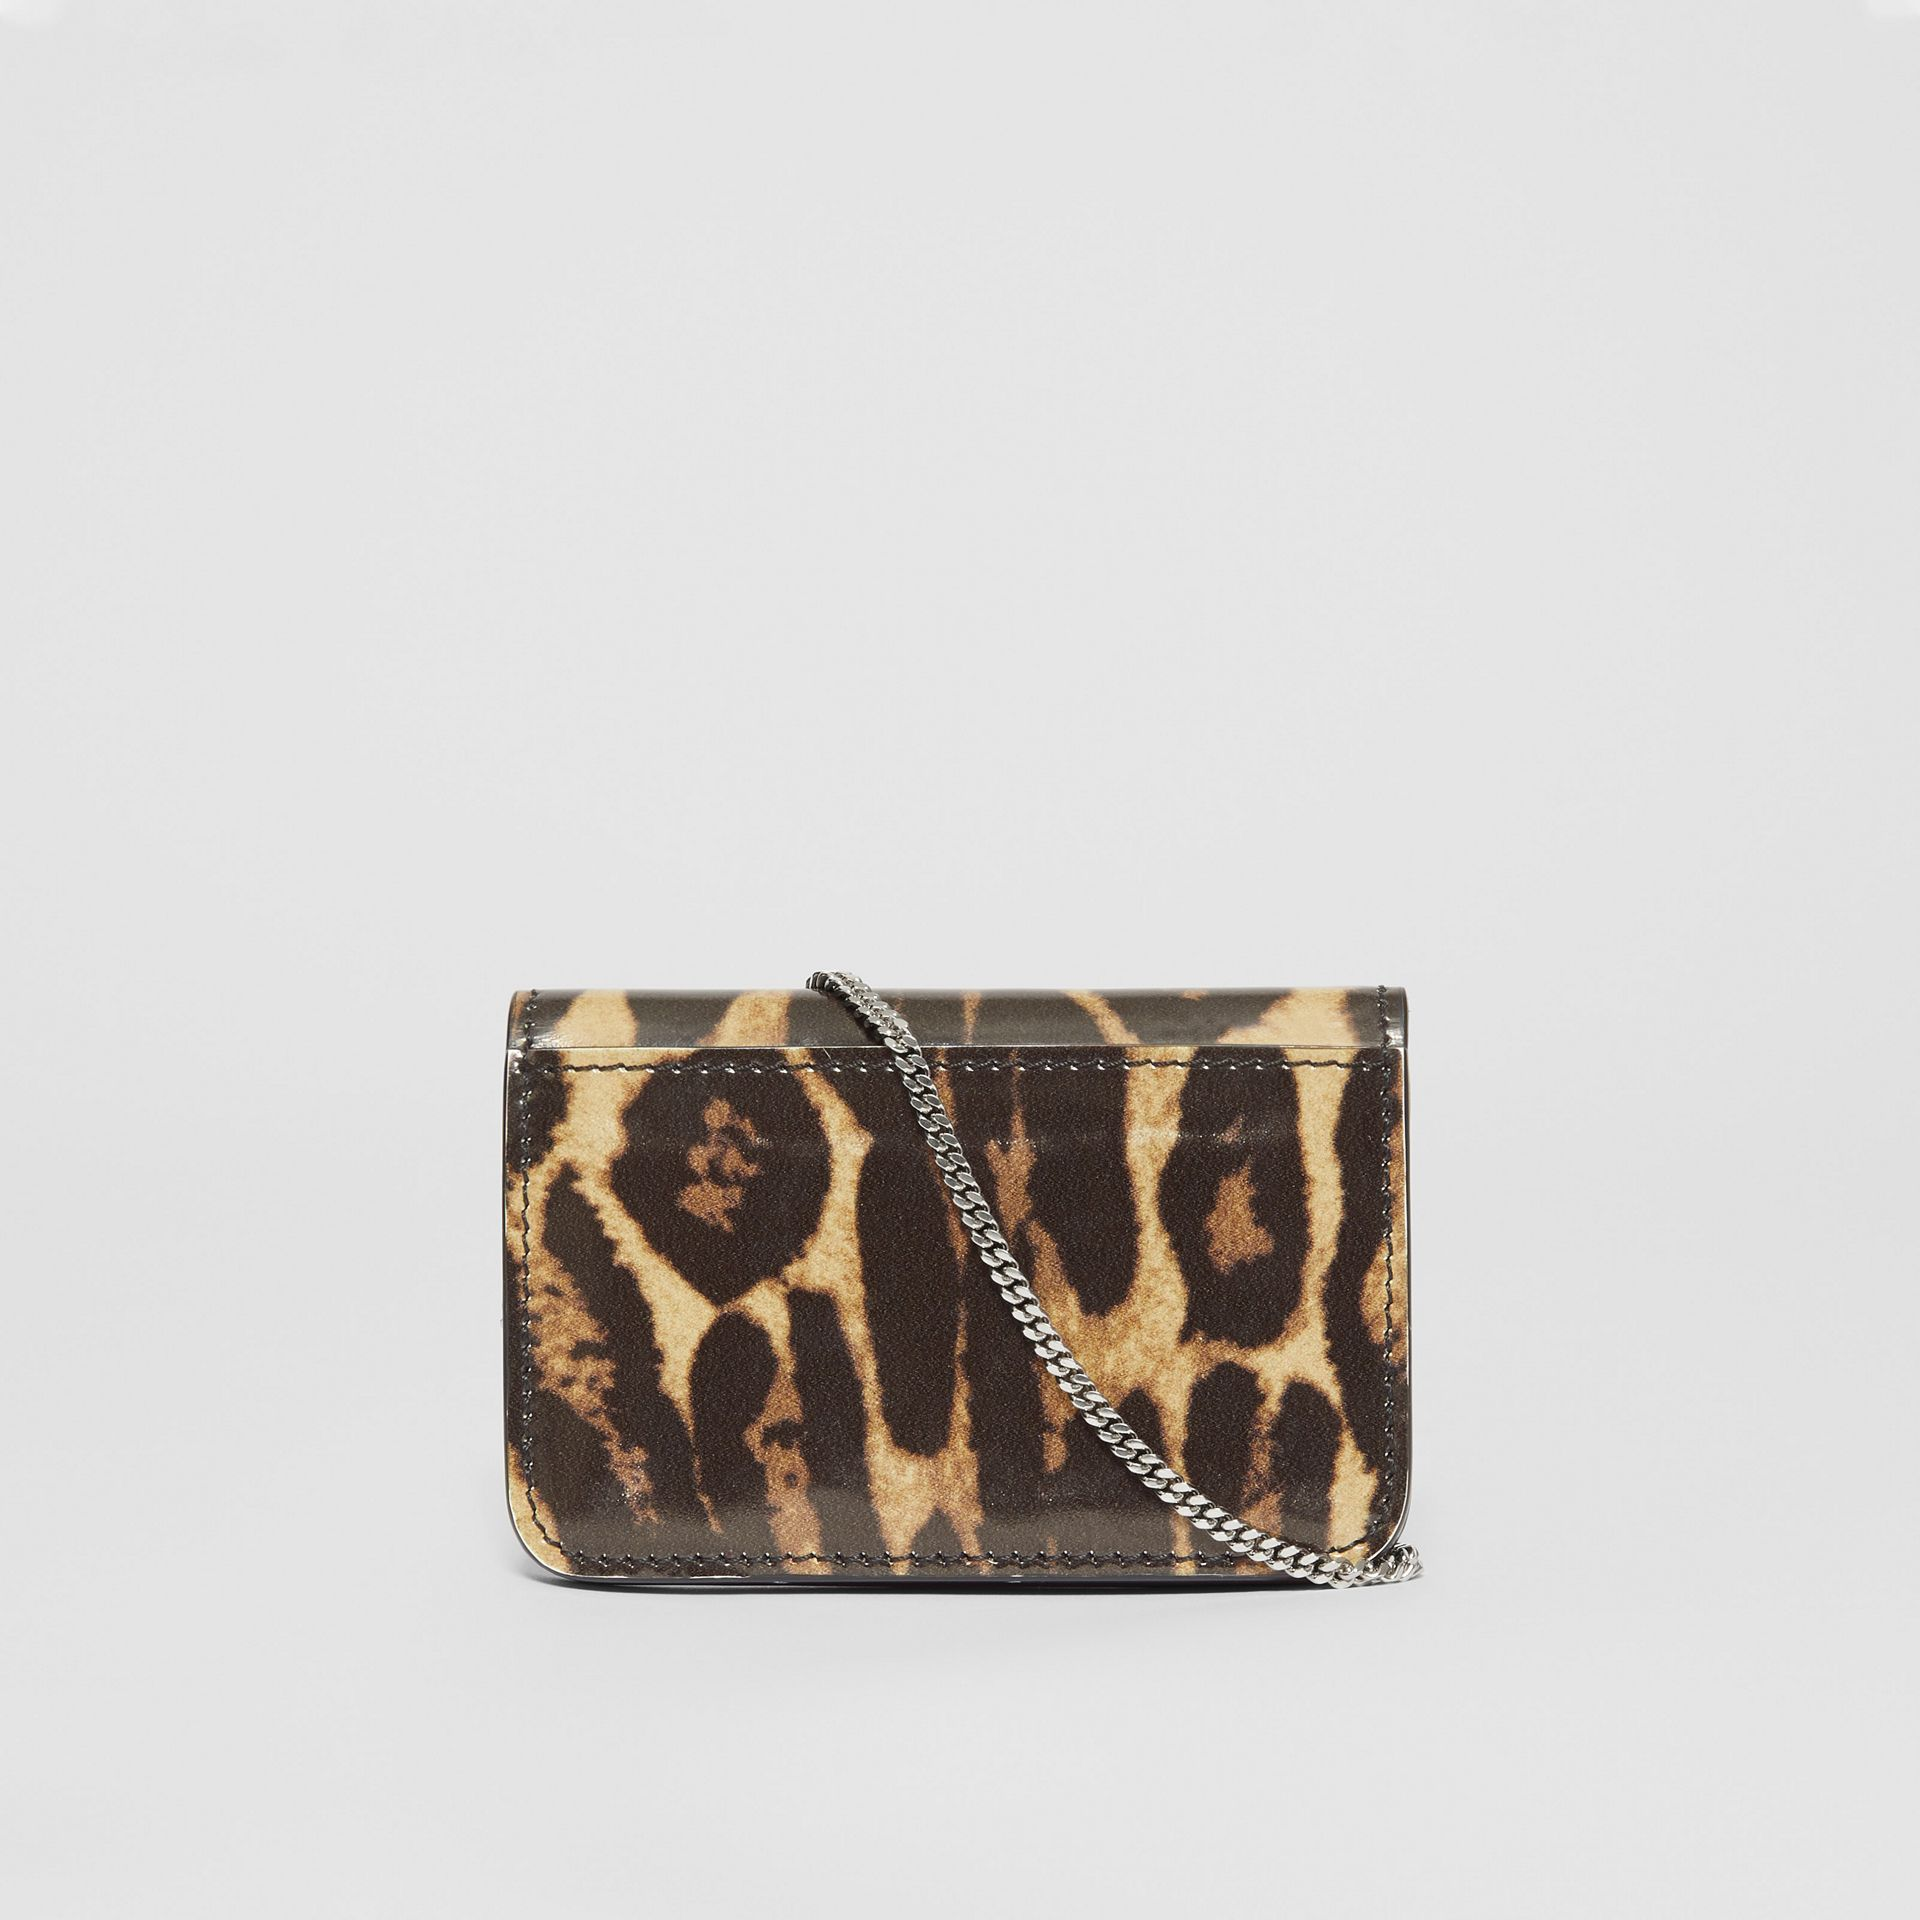 Leopard Print Leather Card Case with Chain Strap in Dark Mustard - Women | Burberry Hong Kong S.A.R - gallery image 7